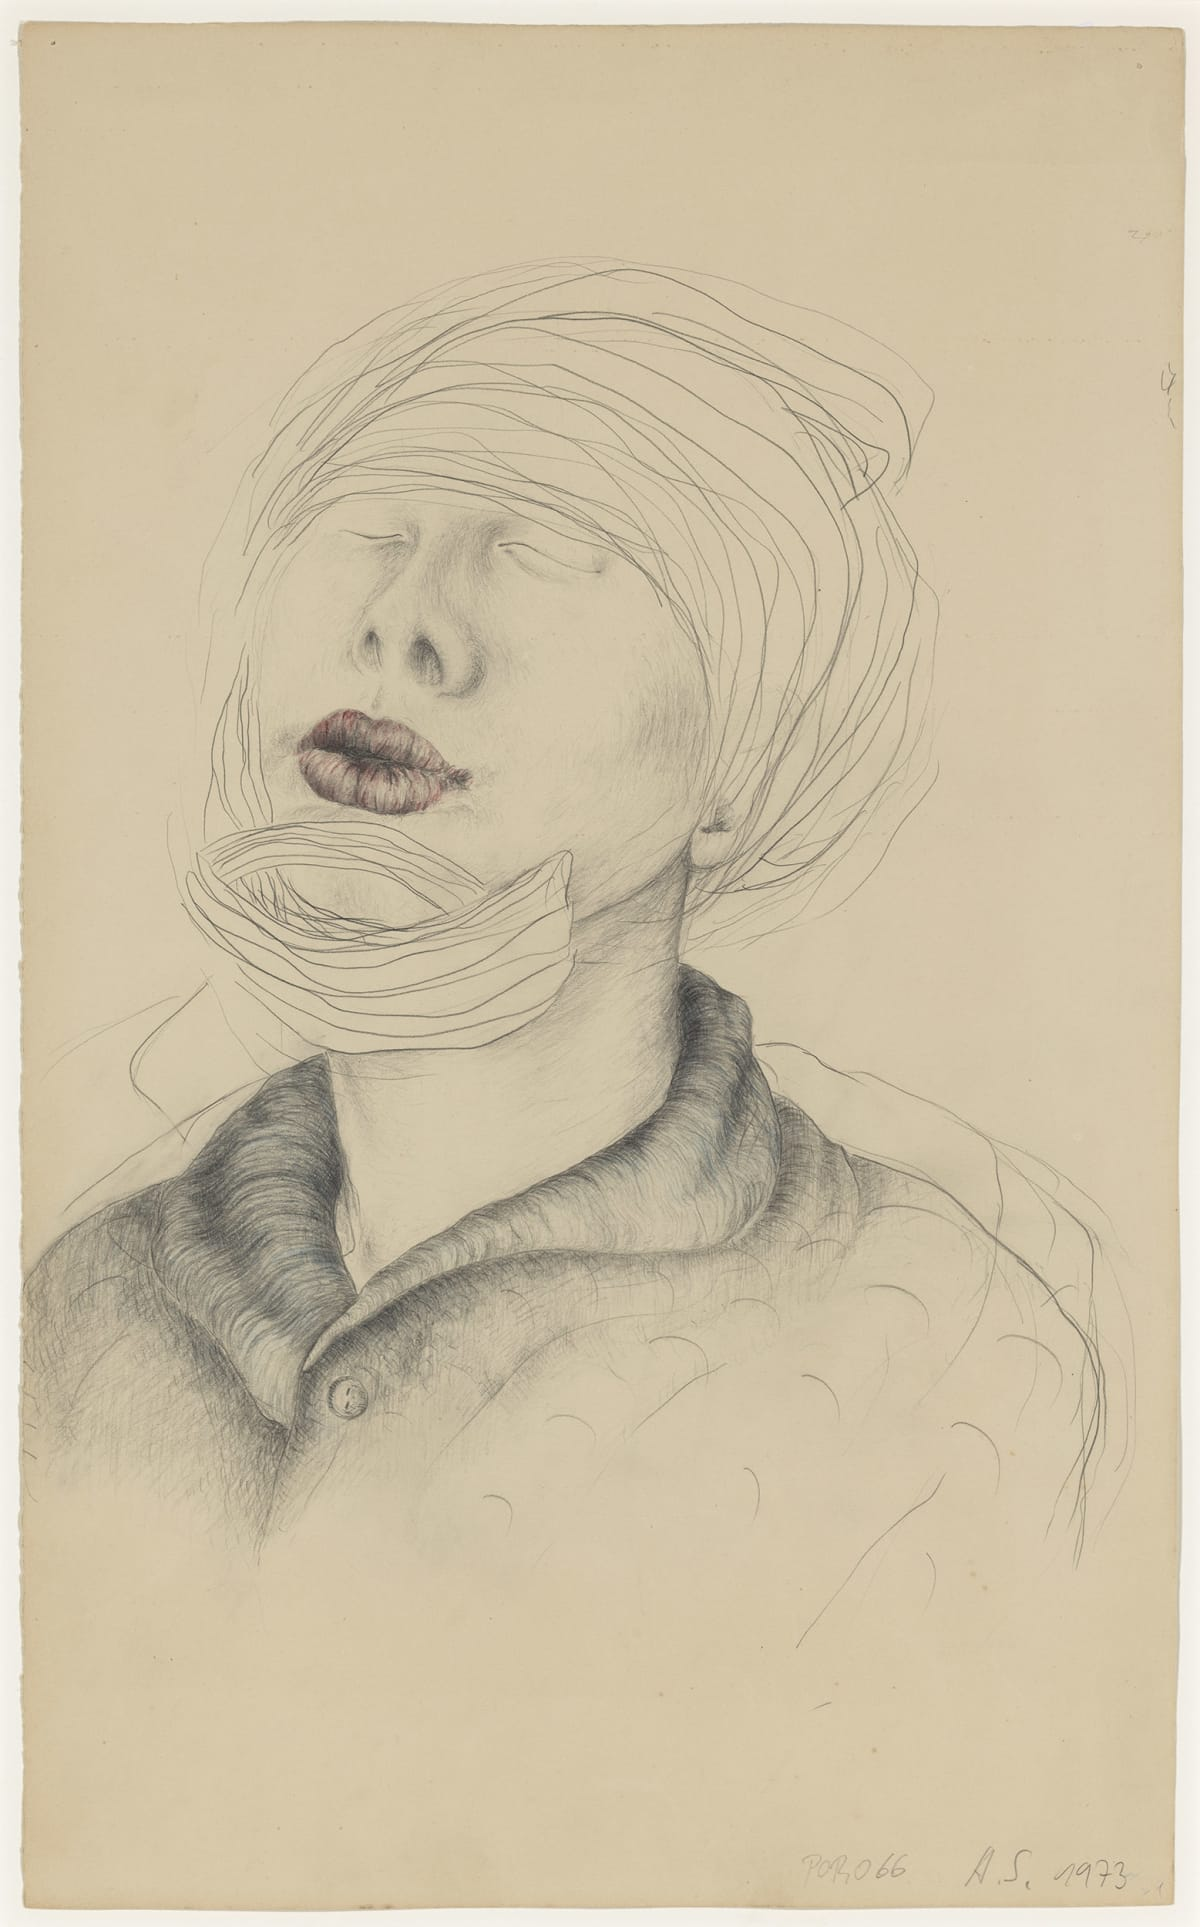 Annegret SOLTAU o.T. (mit Verband) / Untitled (with bandage), 1973 Pencil and crayon on paper Image size: 50 x 37 cm